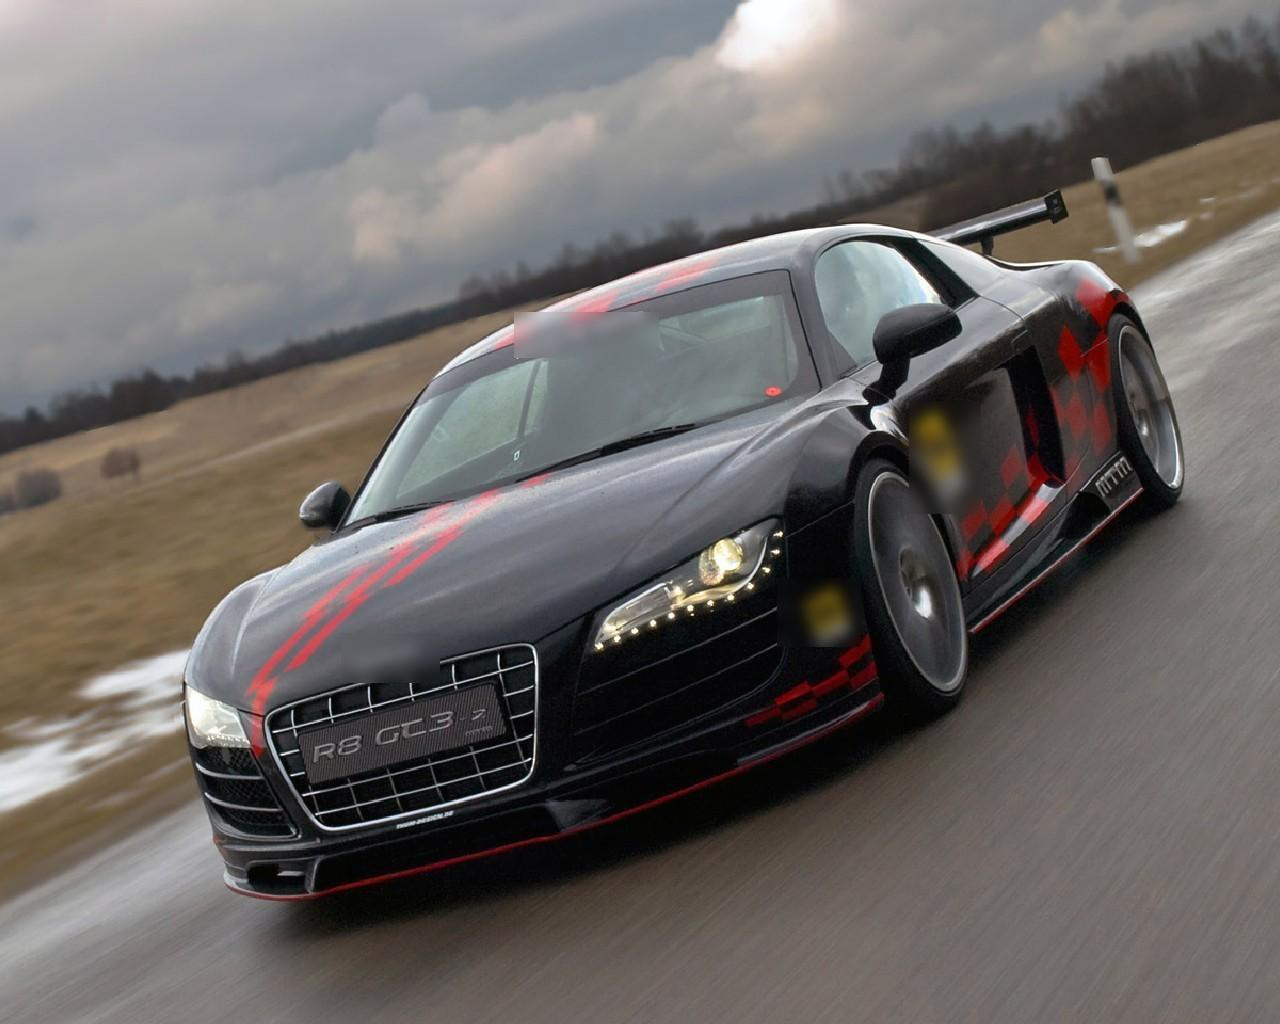 Wallpaper Audi R8 Mtm Gt3 For Android Apk Download